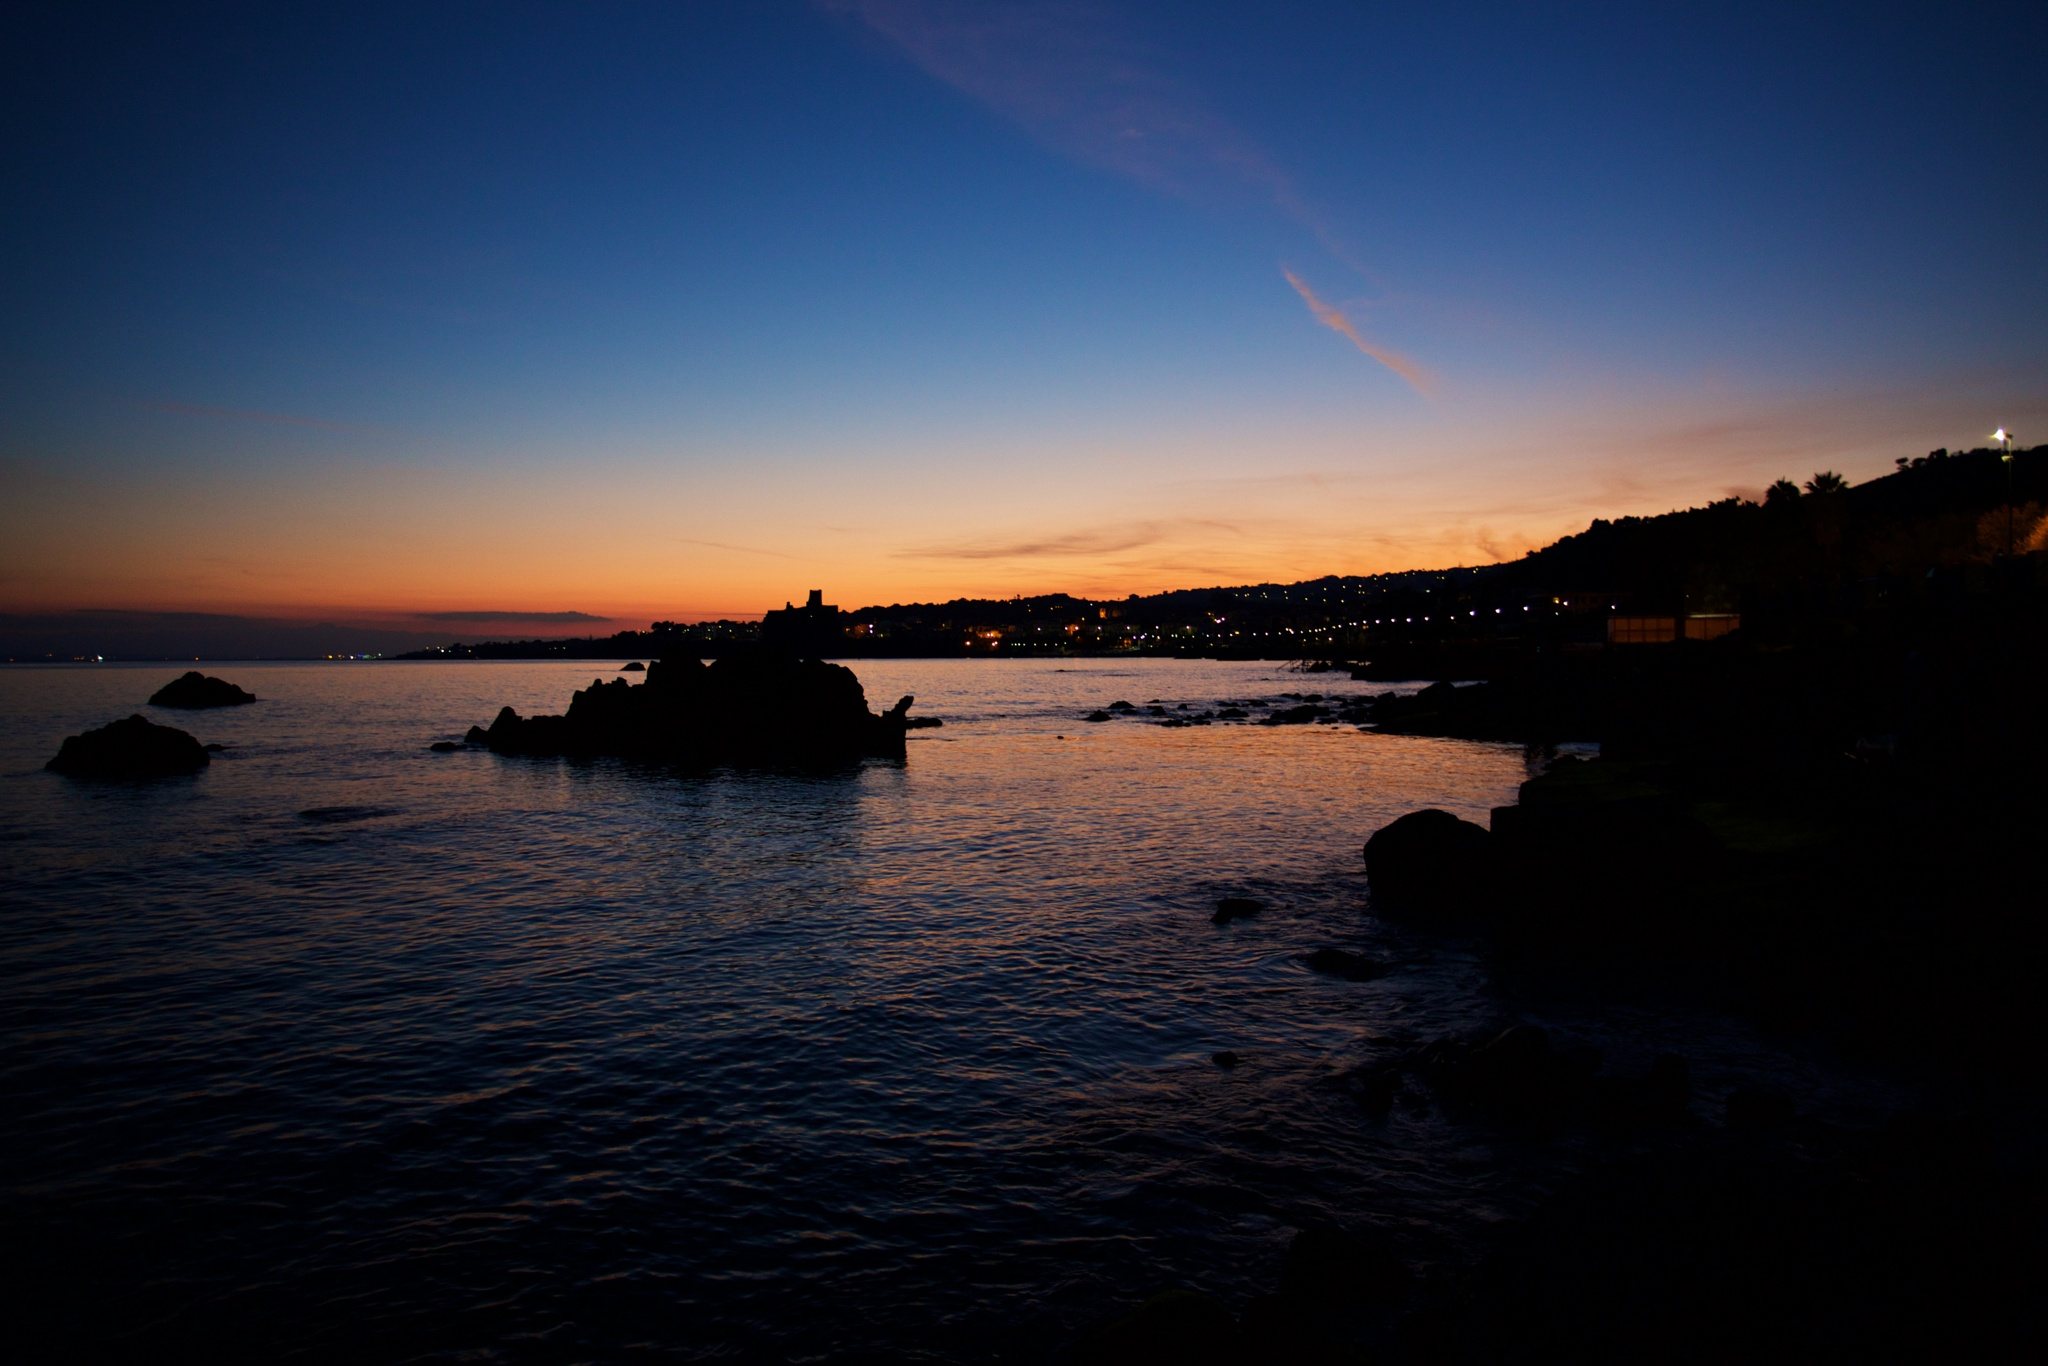 an autumn evening on the waterfront of a small town #2 by paolotomaselloct